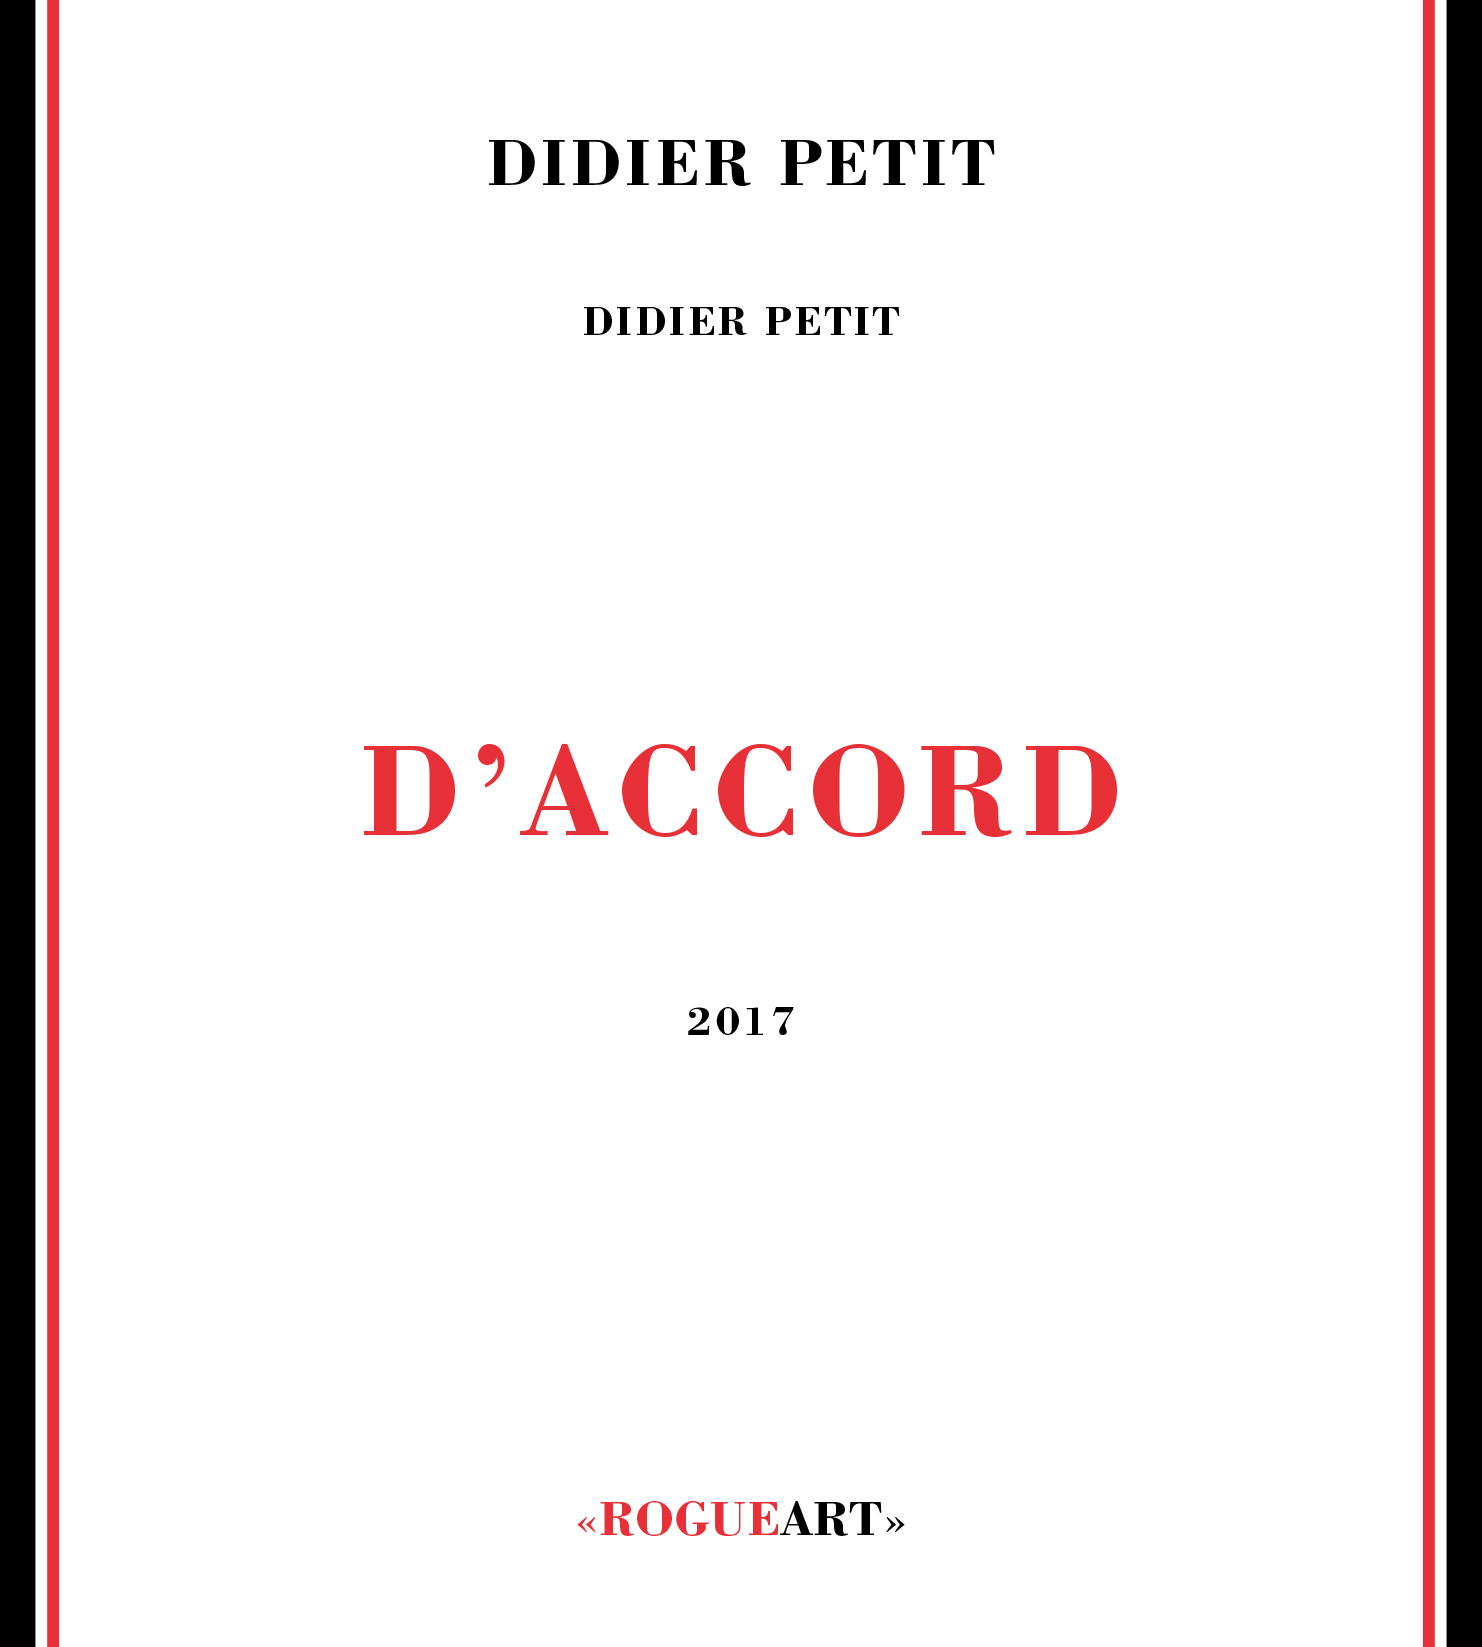 Front cover of the album D'ACCORD